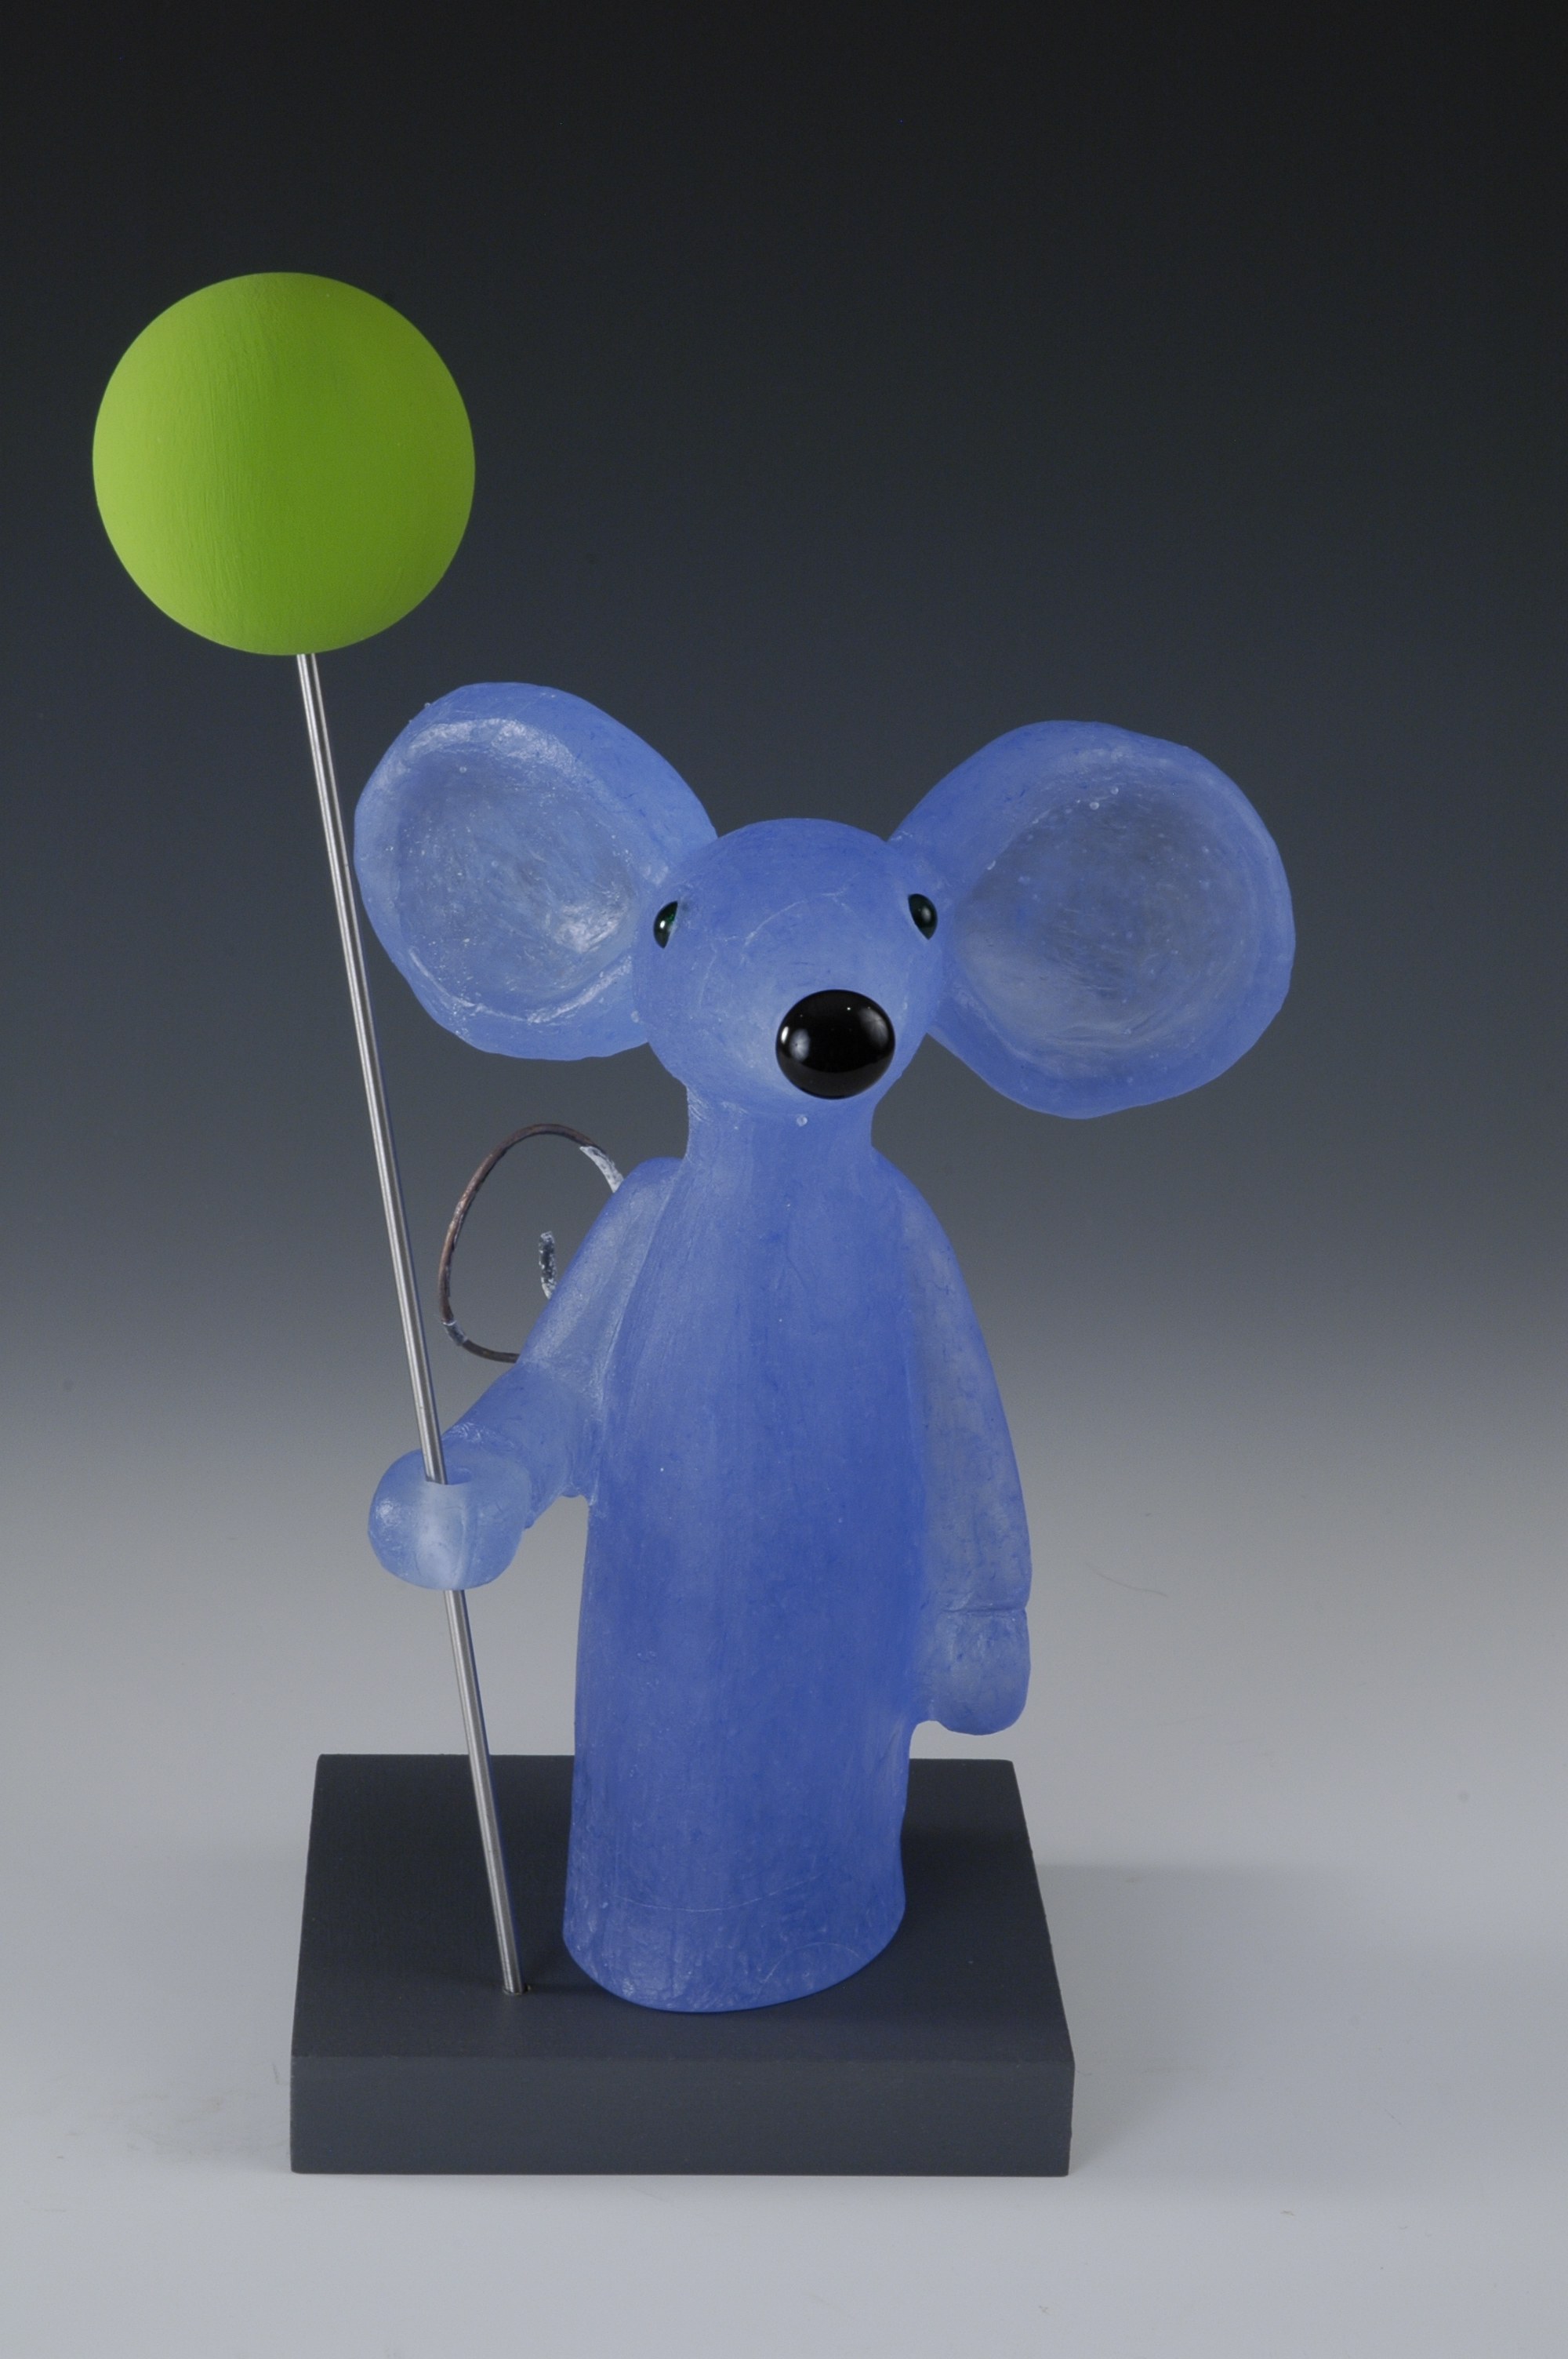 Blue Mouse with Green Balloon